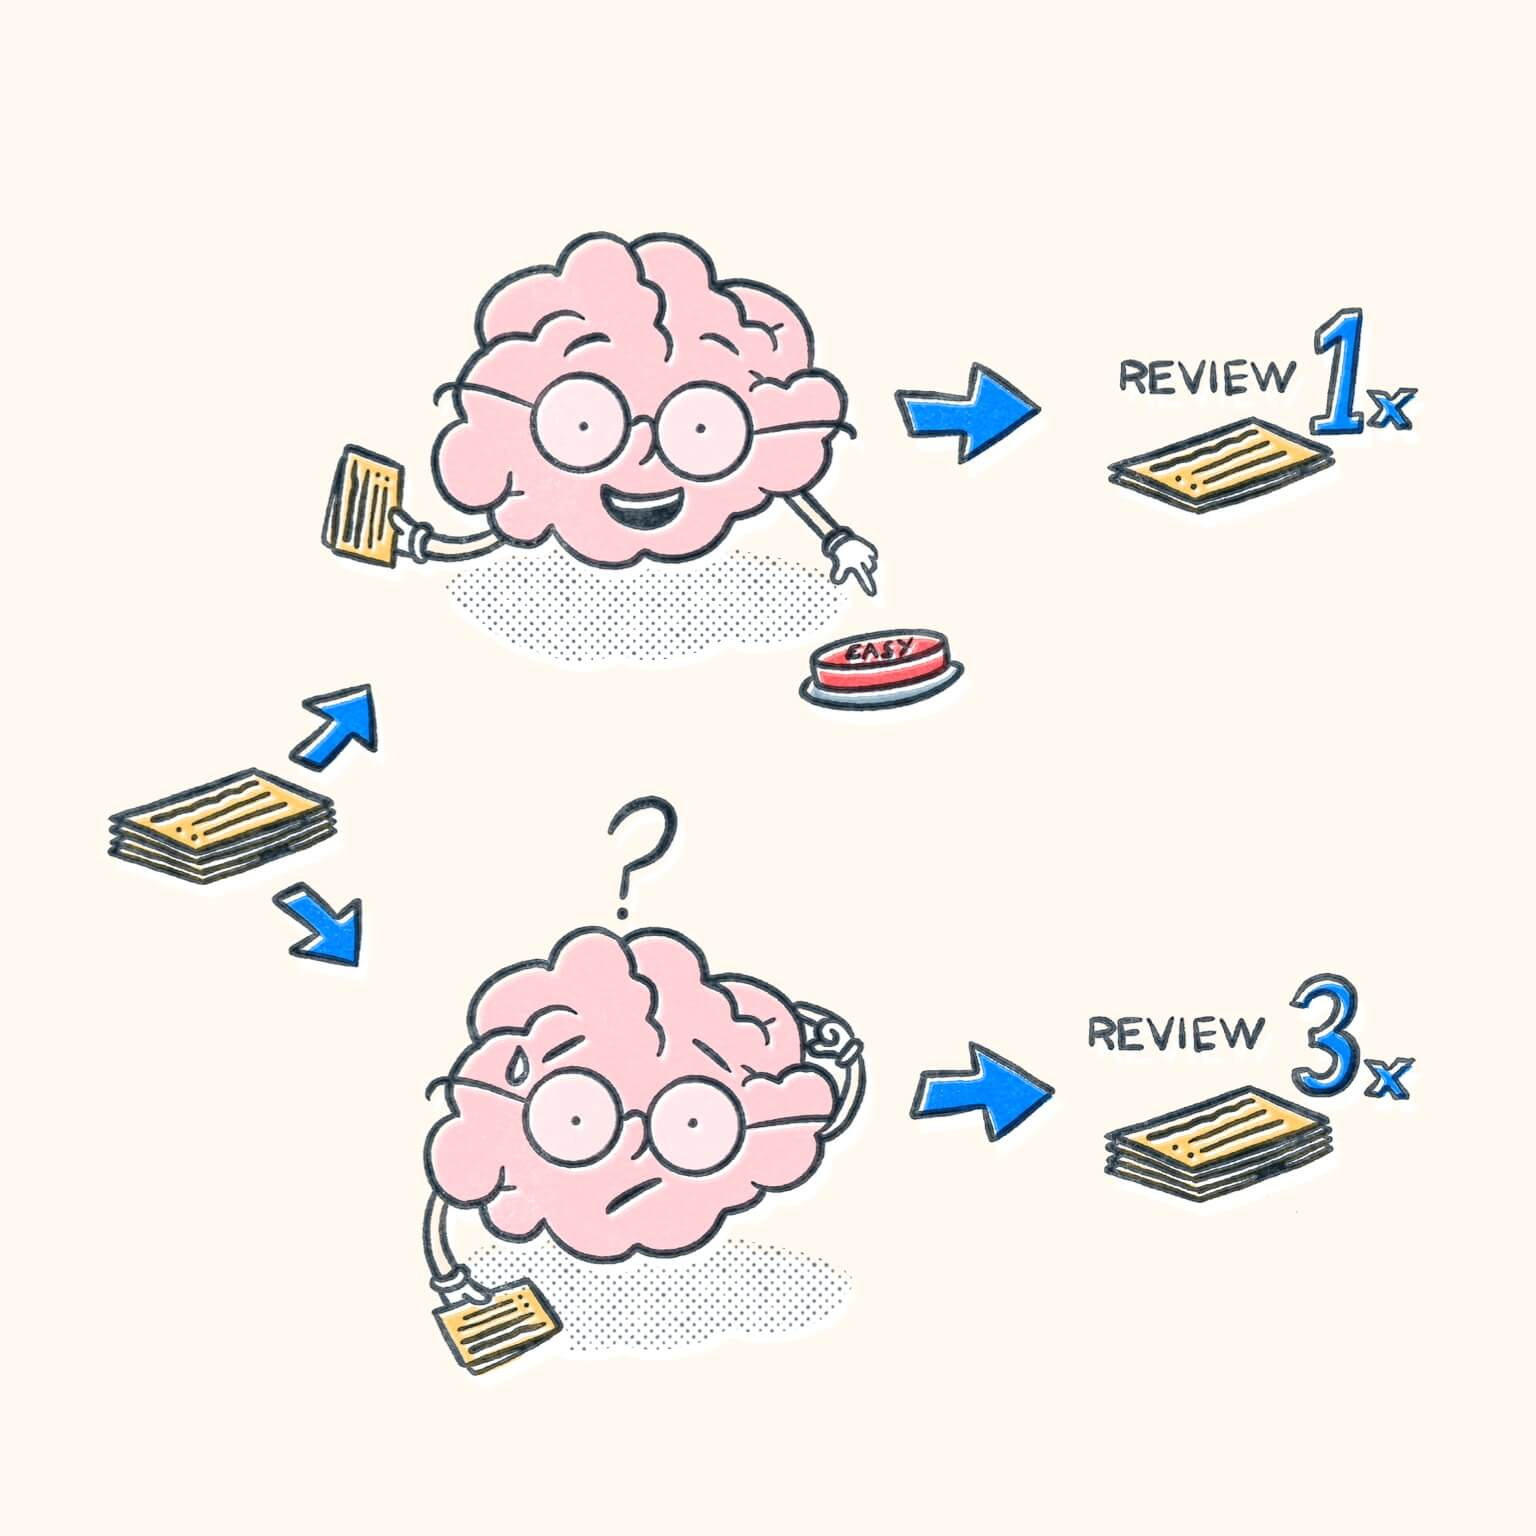 Comparison of two brains with one reviewing easy information once, and the other reviewing hard information multiple times.